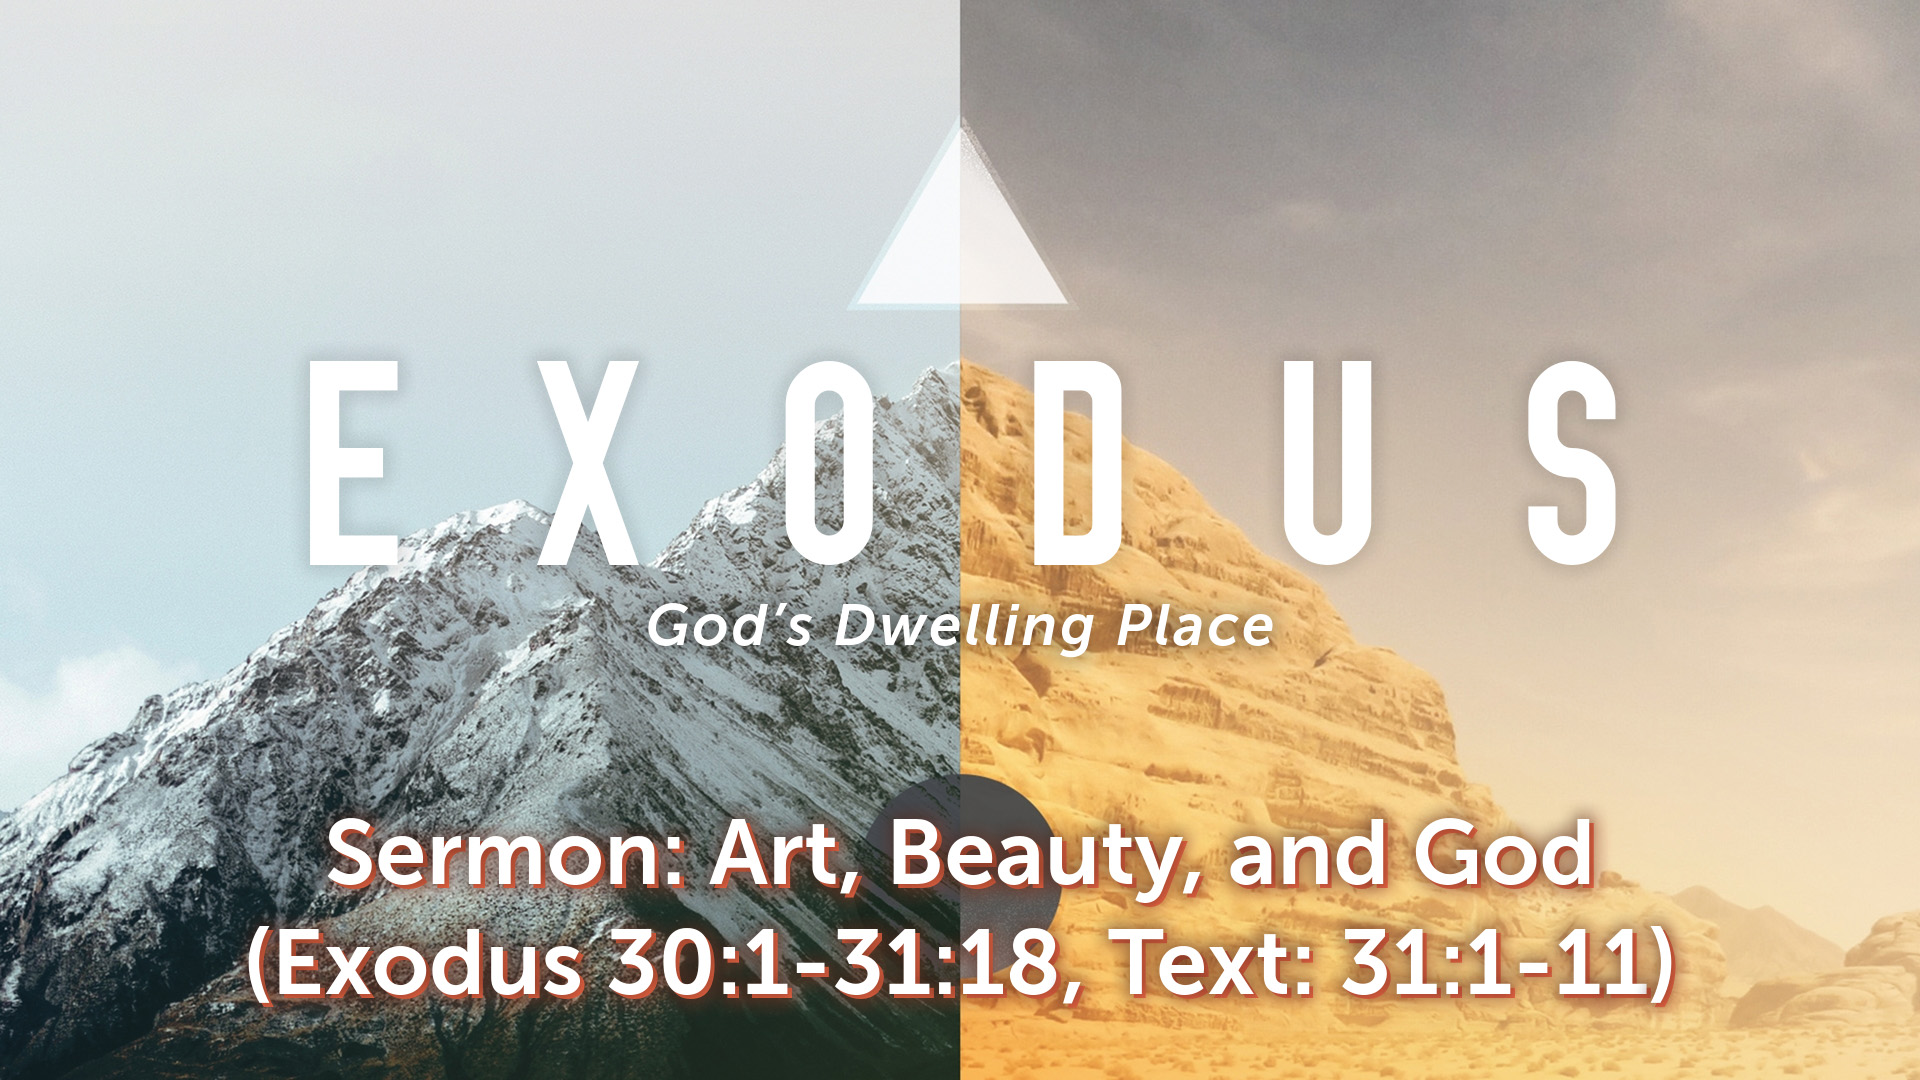 Image for the sermon Art, Beauty, and God